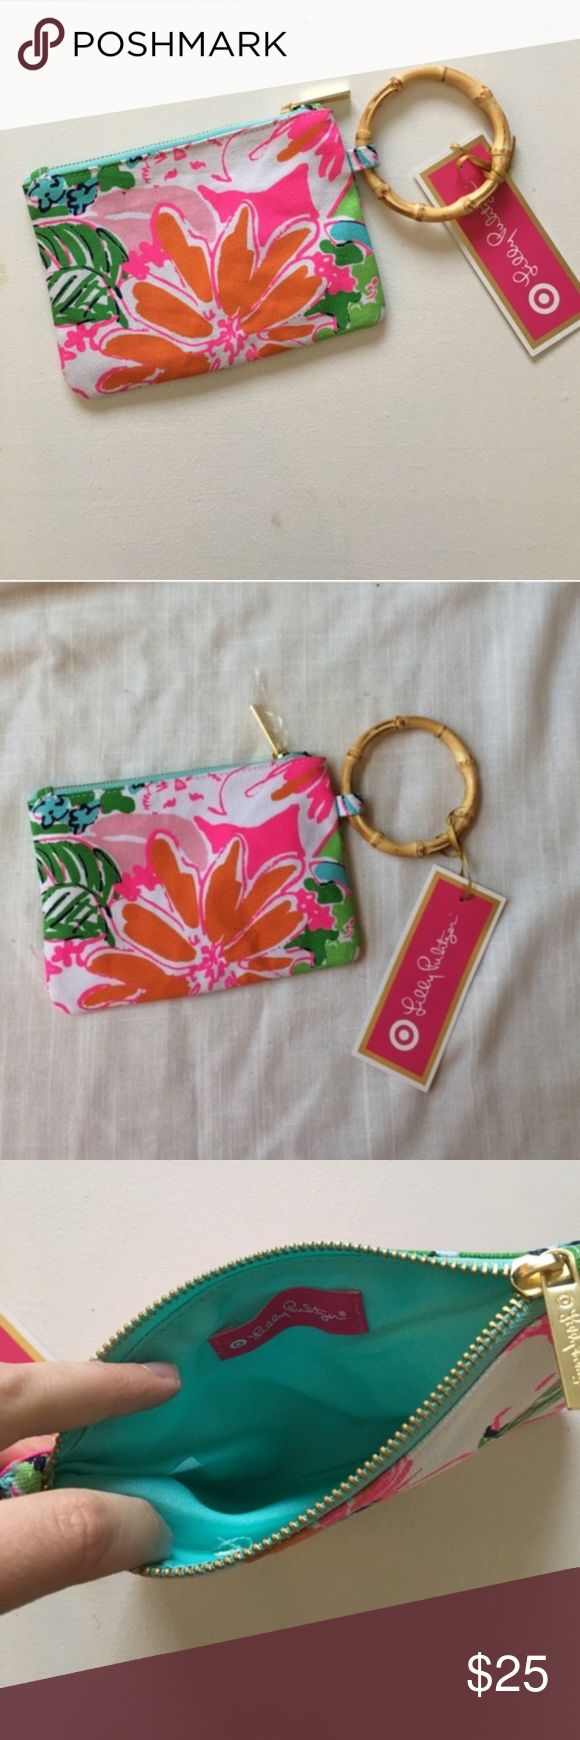 BRAND NEW Lilly Pulitzer Bamboo Wristlet Brand: Lilly Pulitzer for Target    Condition: Brand new with tags (stored in brand new plastic bin since original purchase)    Color: Multi     Price is firm. Lilly Pulitzer for Target Bags Clutches & Wristlets